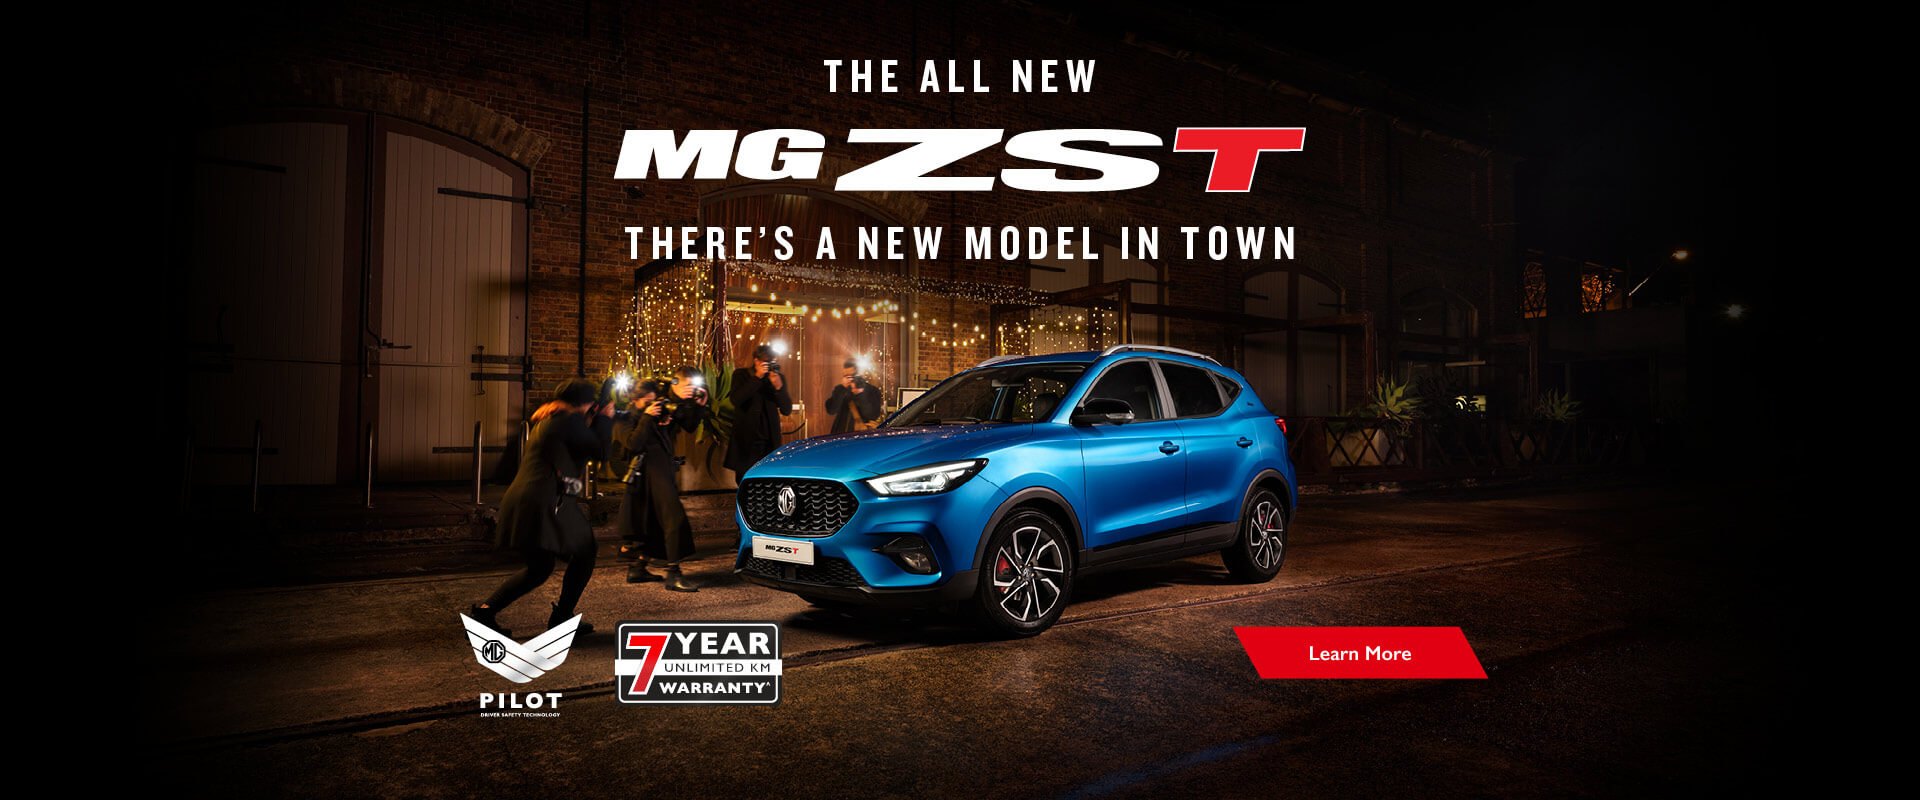 The all new MG ZST - Available now